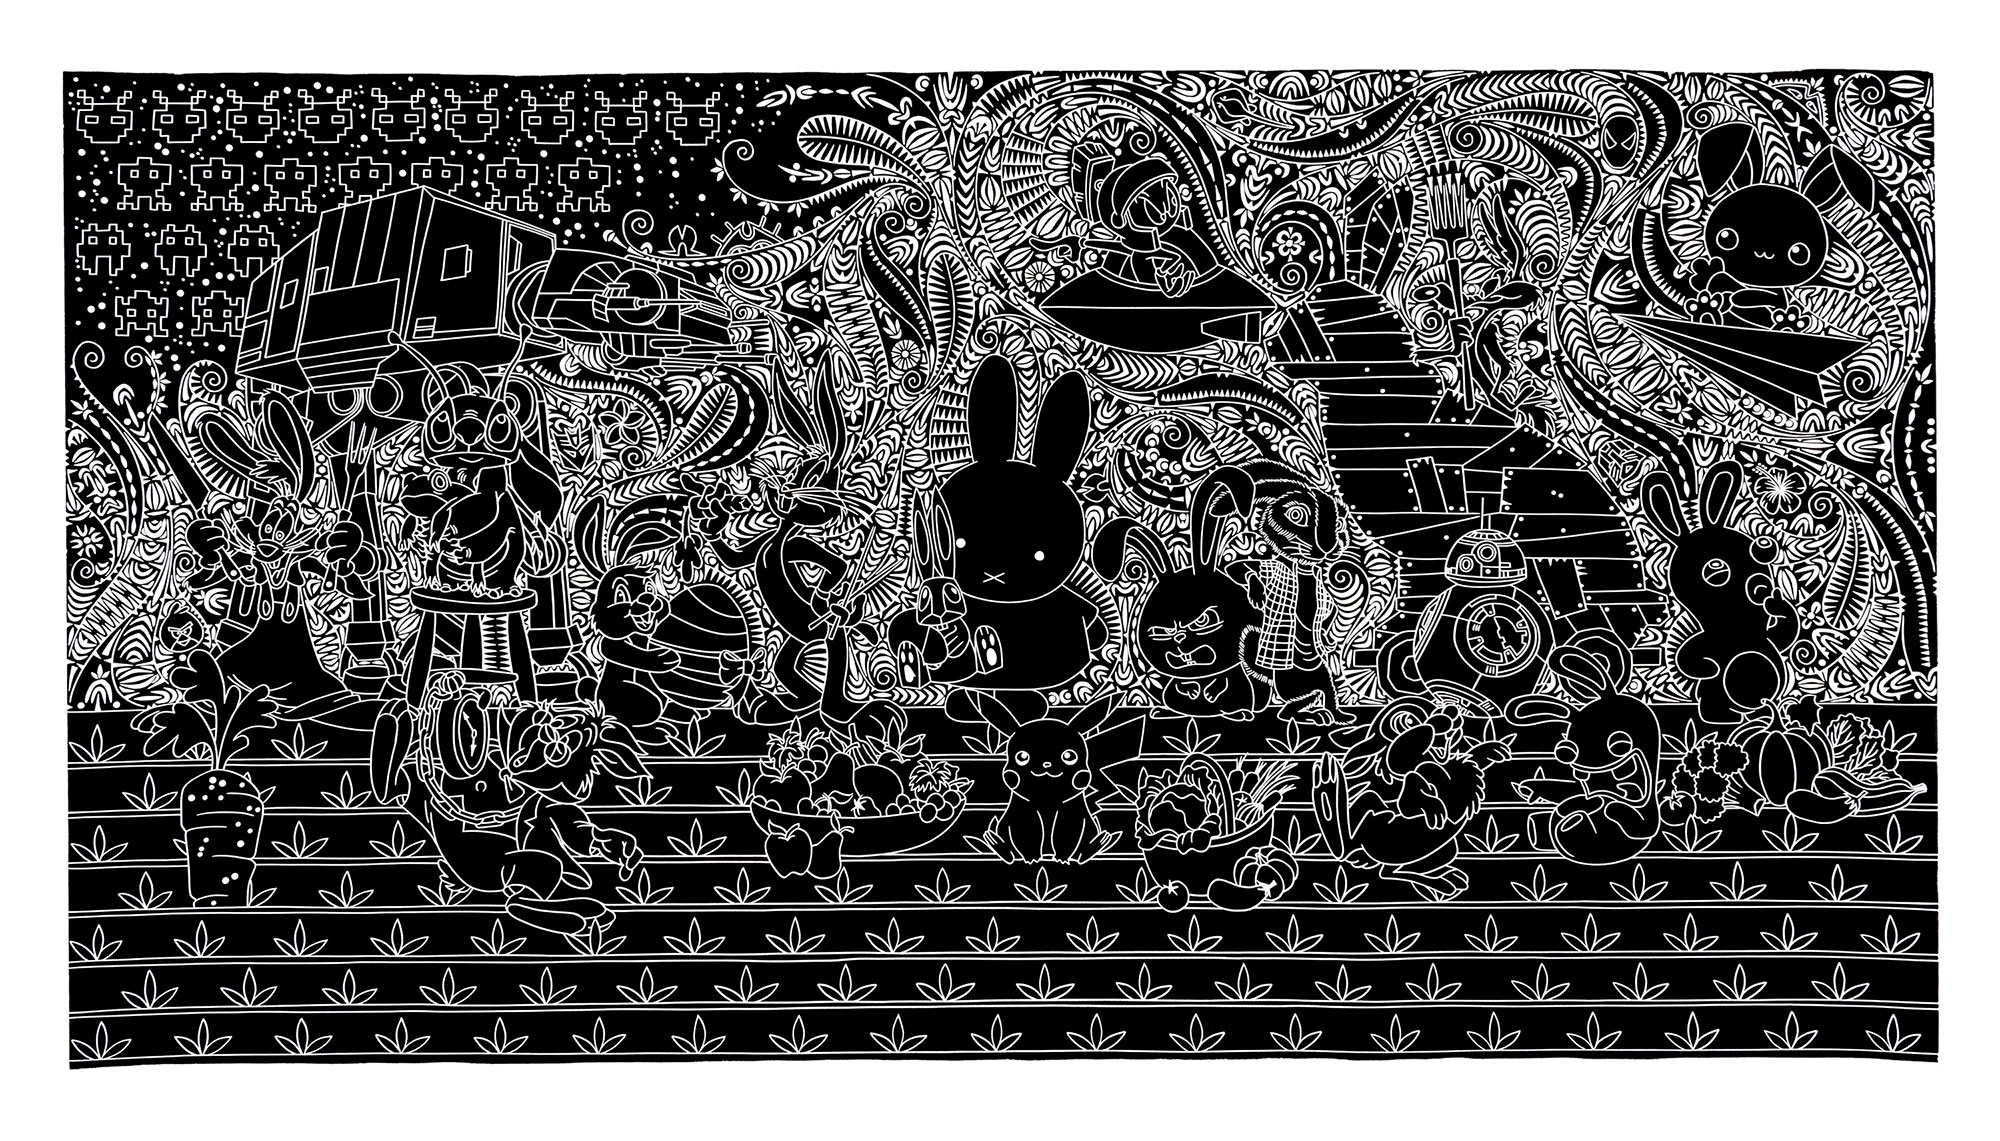 black and white etching of miffy the bunny